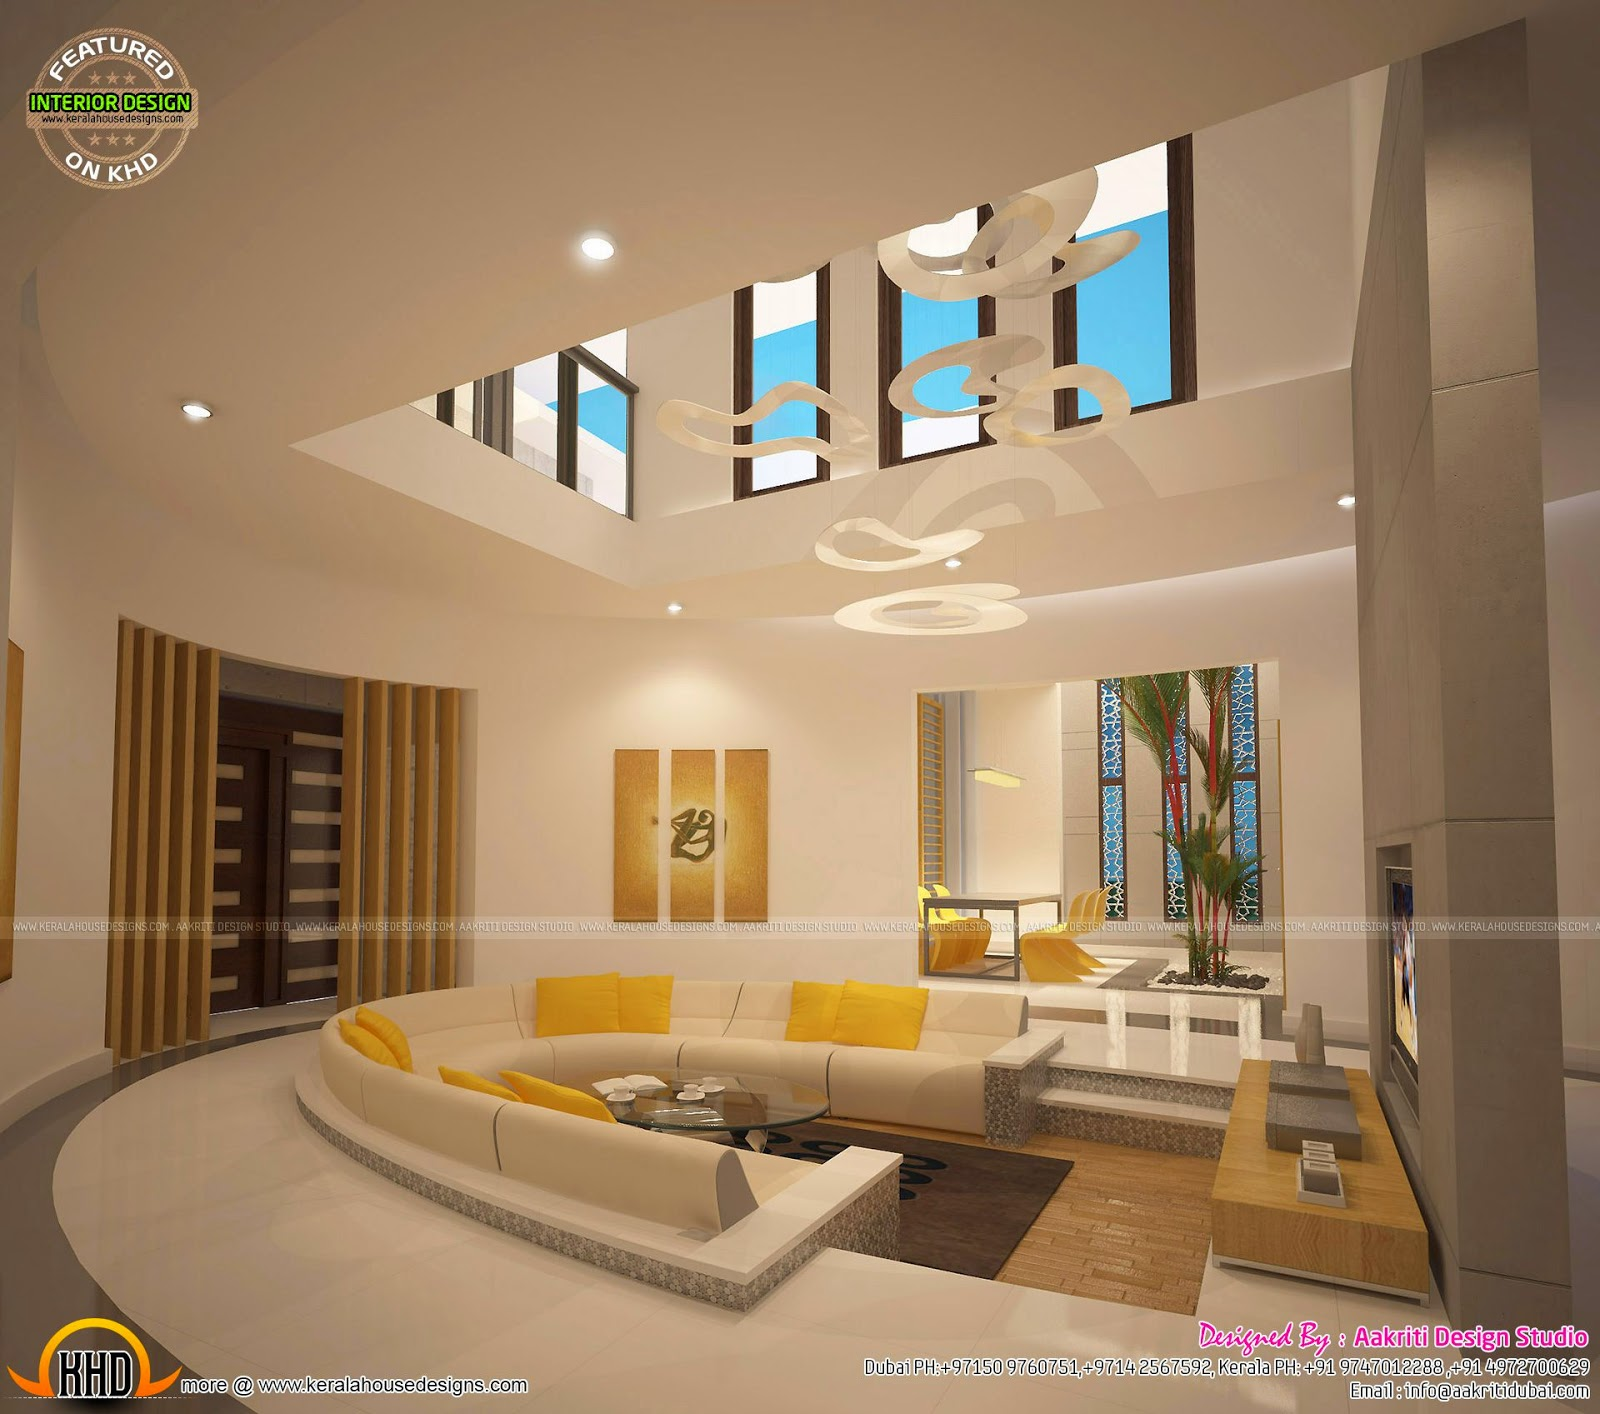 Awesome interiors of living kitchen and bathroom kerala for Awesome interior design